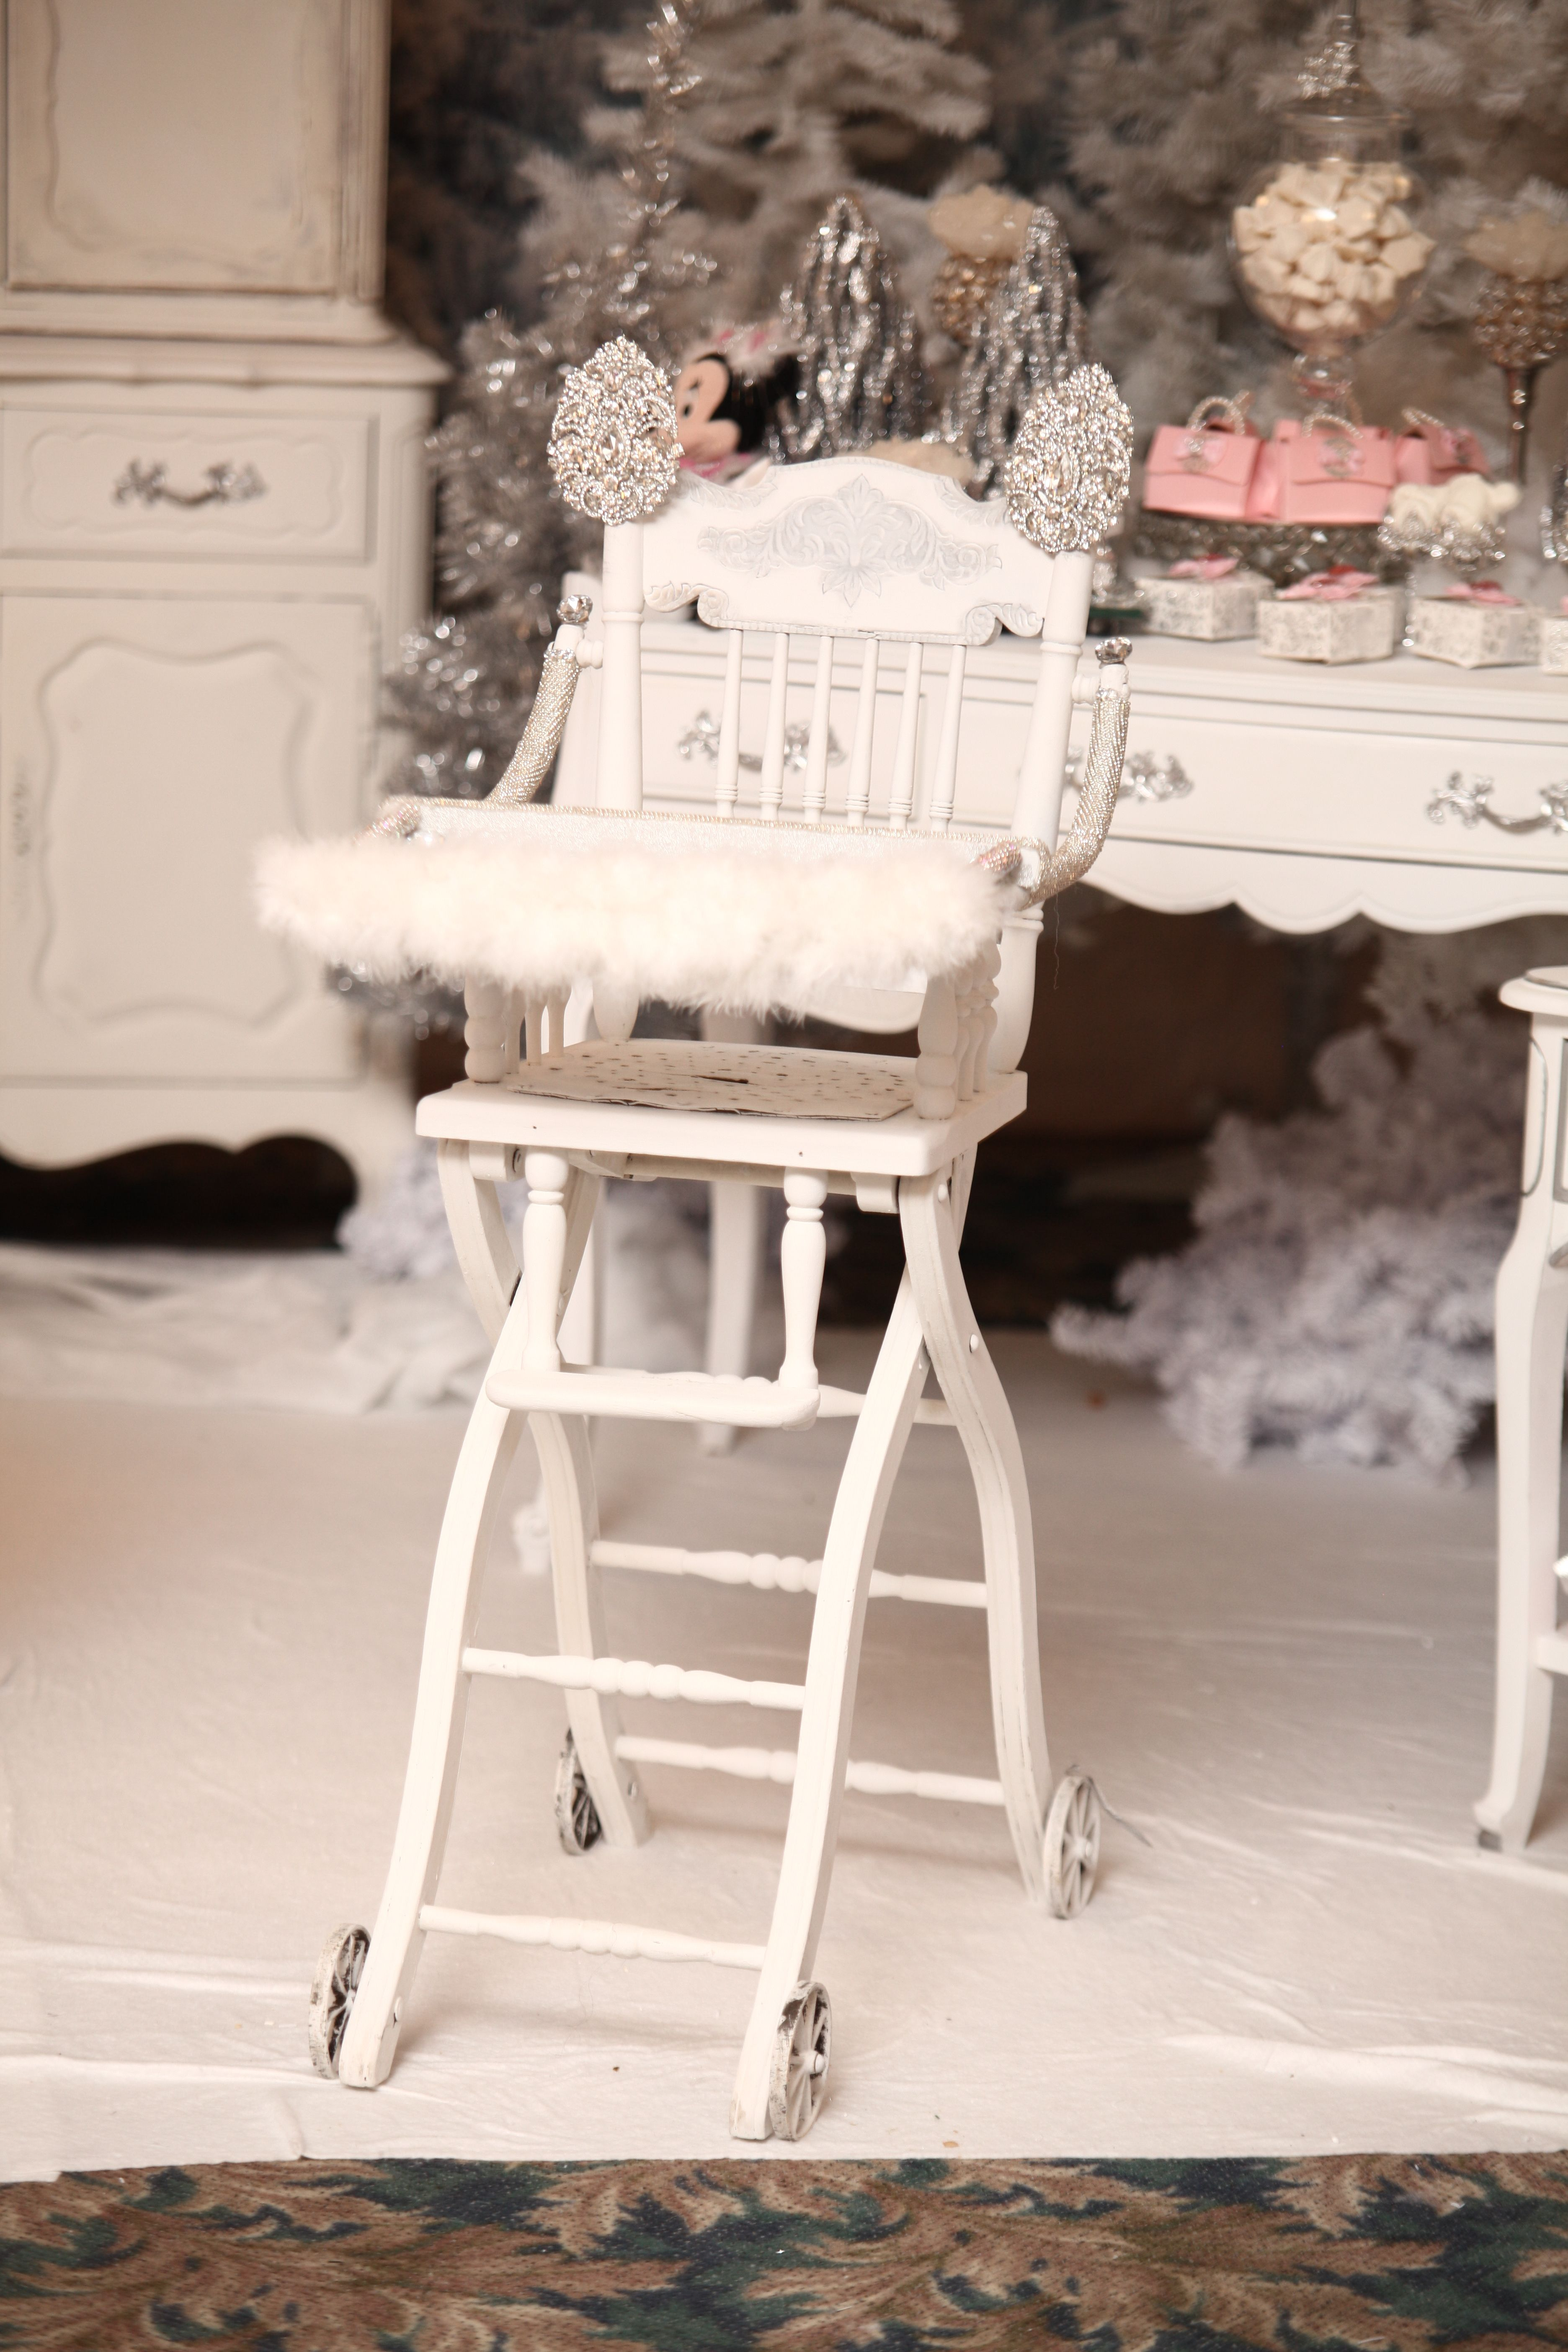 Vintage 1800s high chair Minnie Mouse in winter wonderland bling